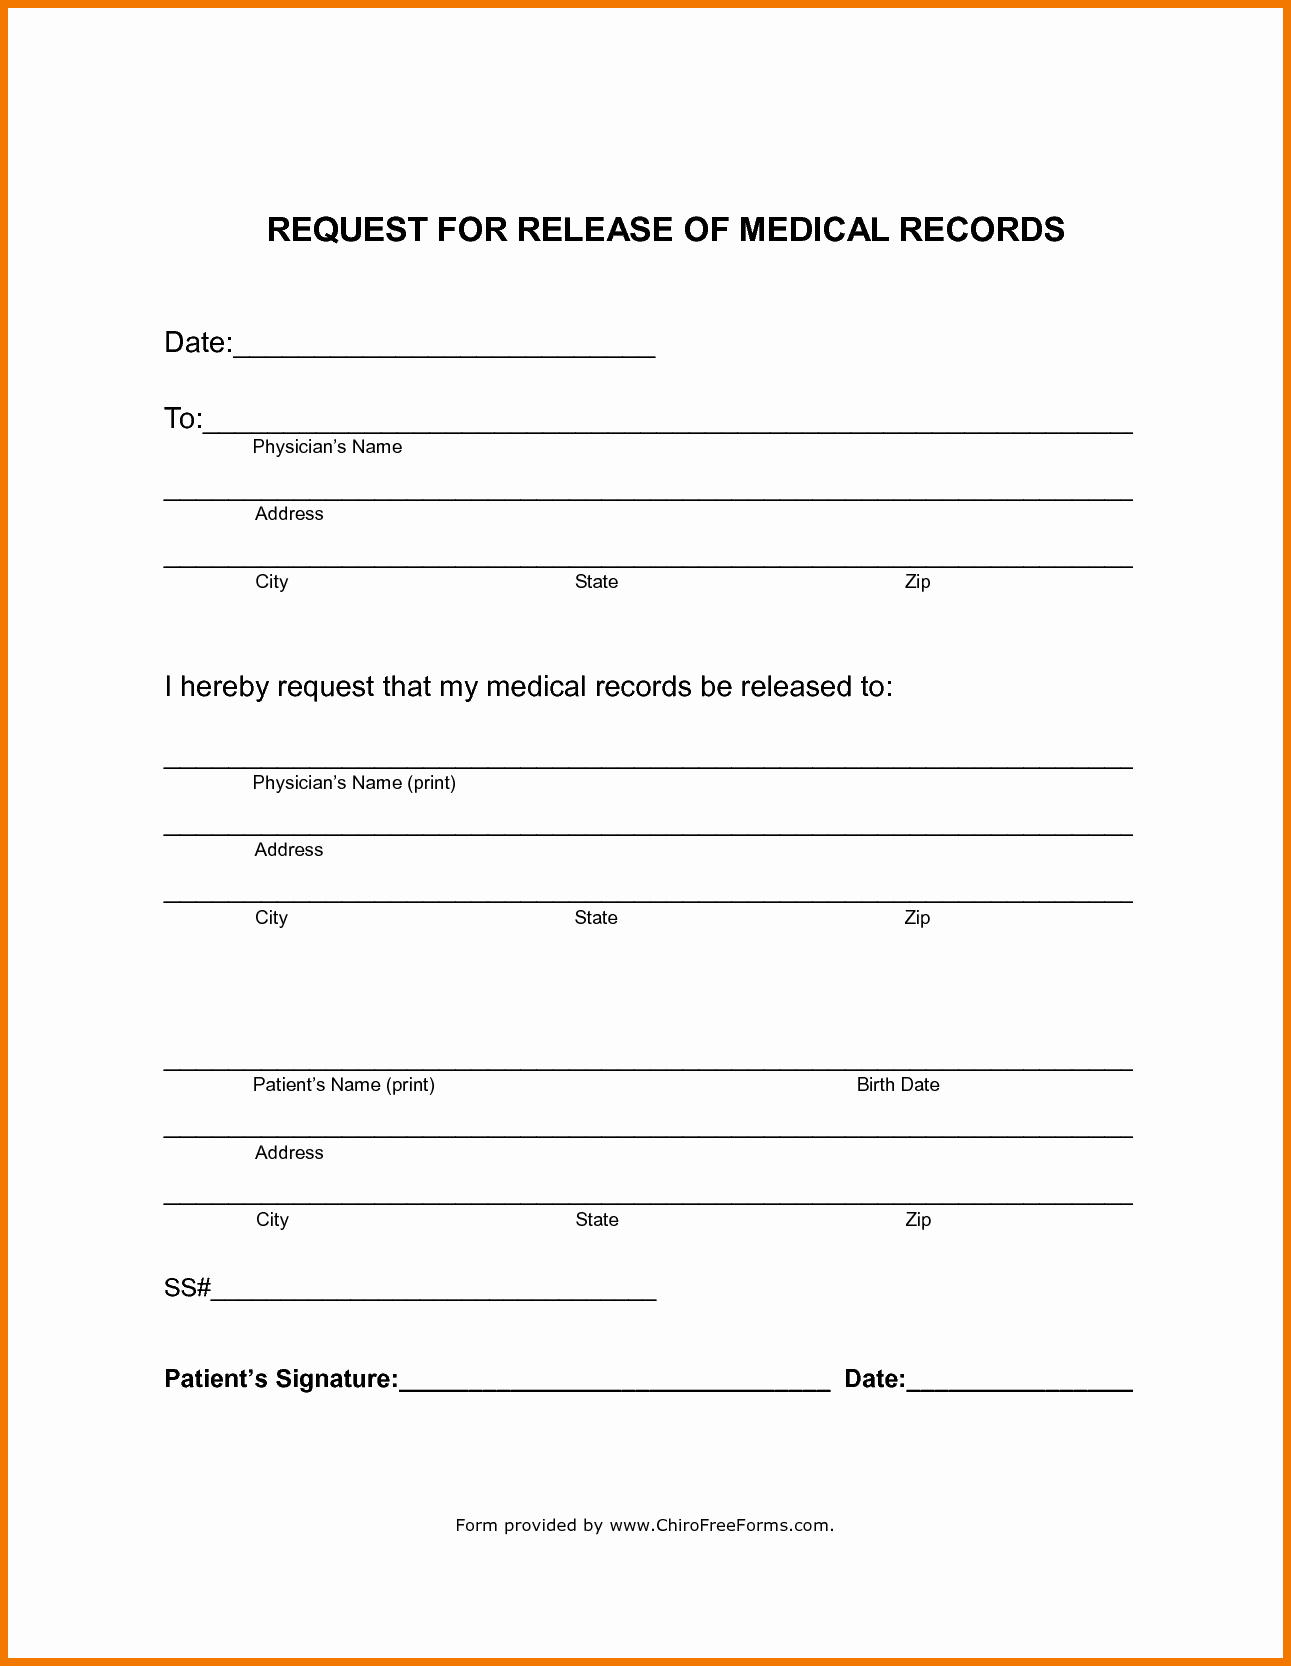 Medical Record form Template Fresh Policy and forms Ideas Collection Medical Record Release